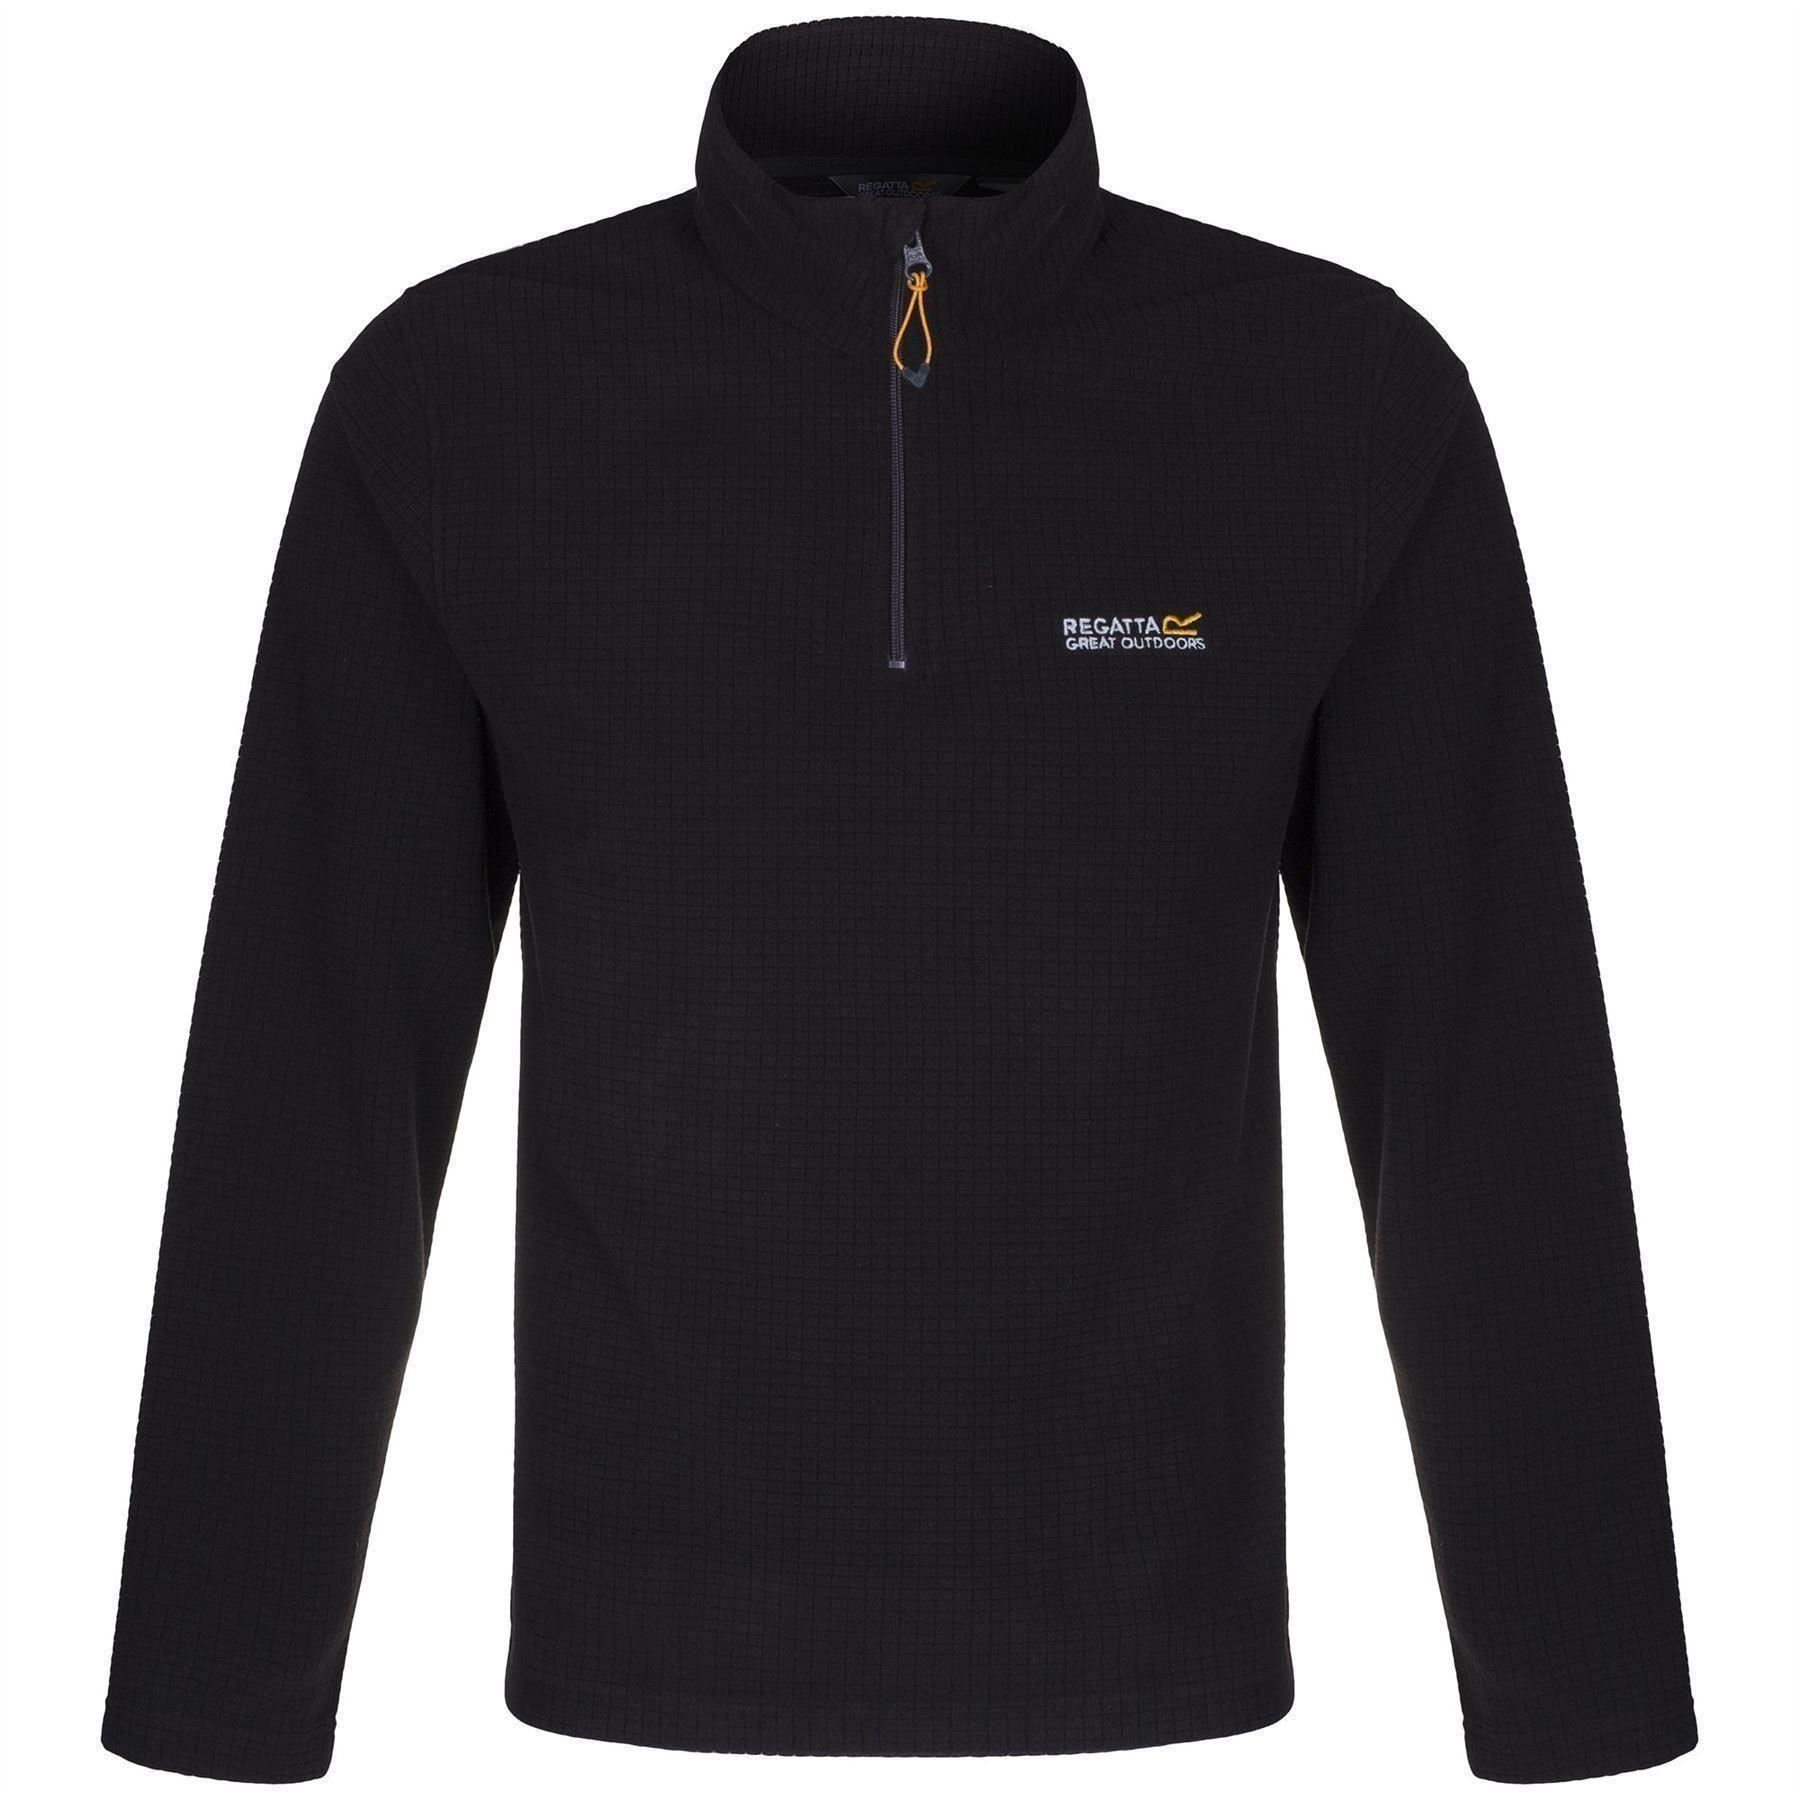 Regatta-Elgon-para-hombre-Half-Zip-Fleece-Pullover-Jumper-Top-RMA236 miniatura 9